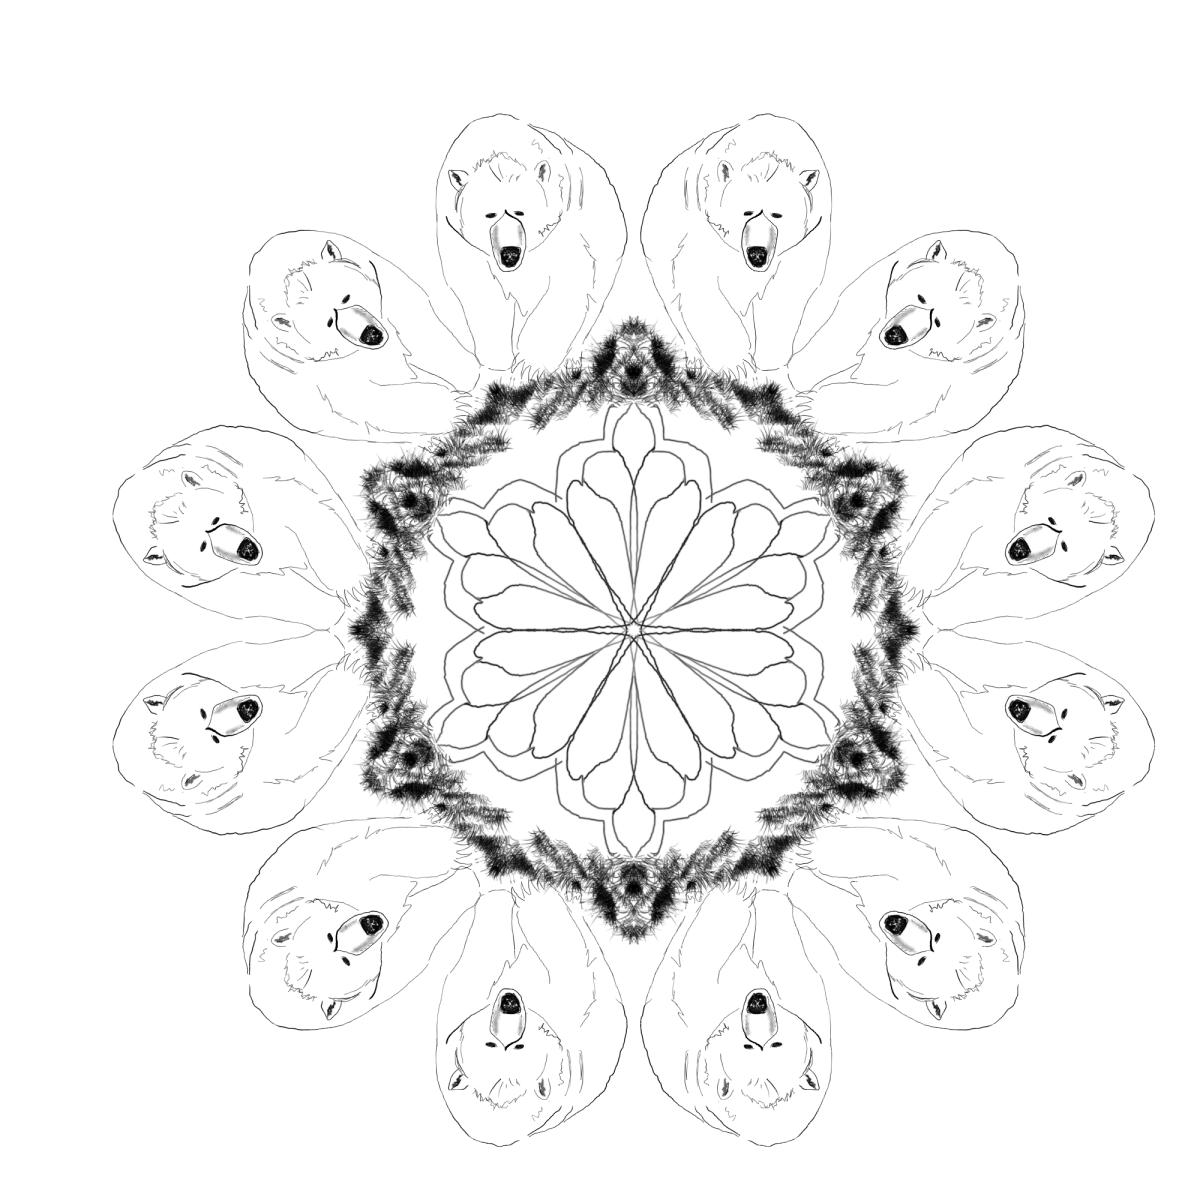 Bears surround a mandala design.